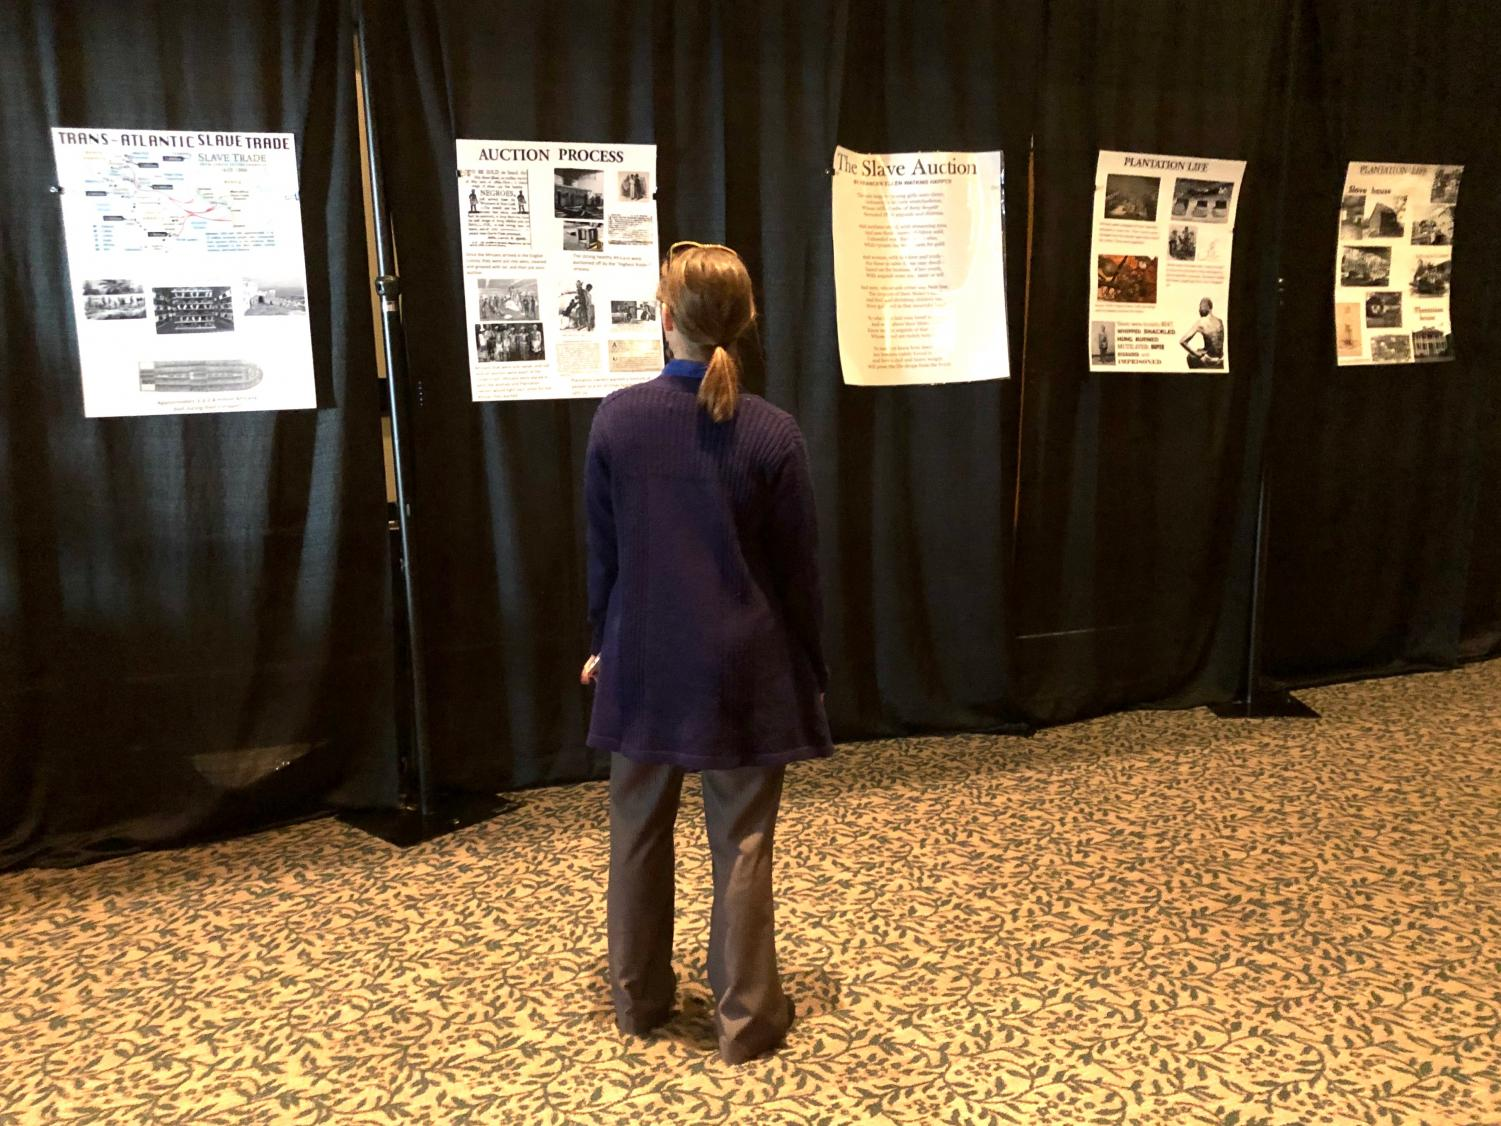 dee reads posters about the history of slavery in the U.S.